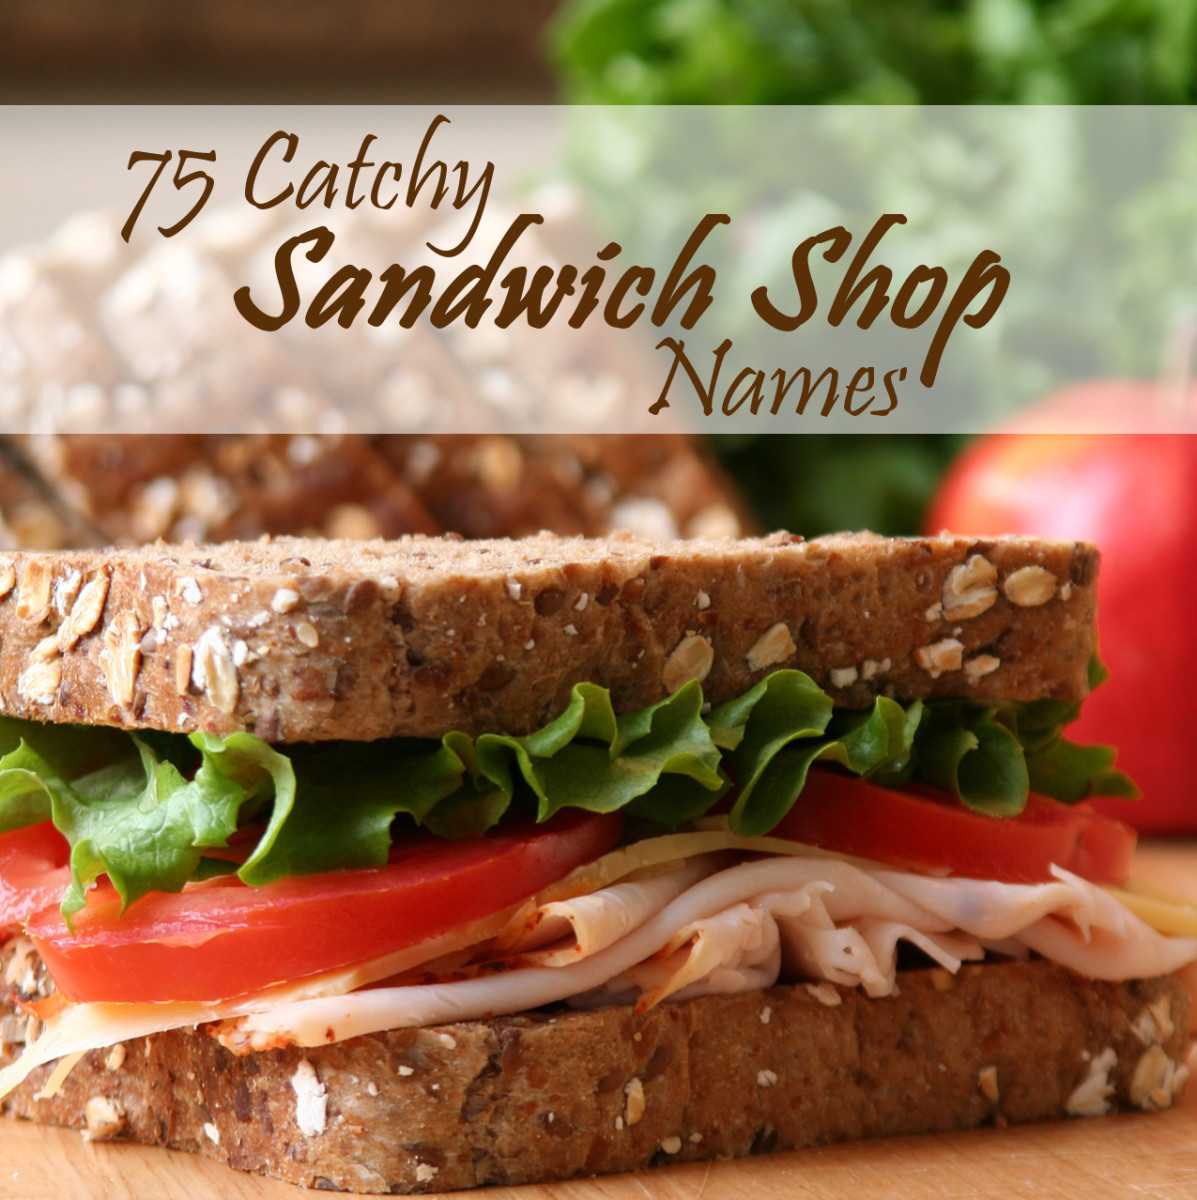 75 Catchy Sandwich Shop Names | ToughNickel